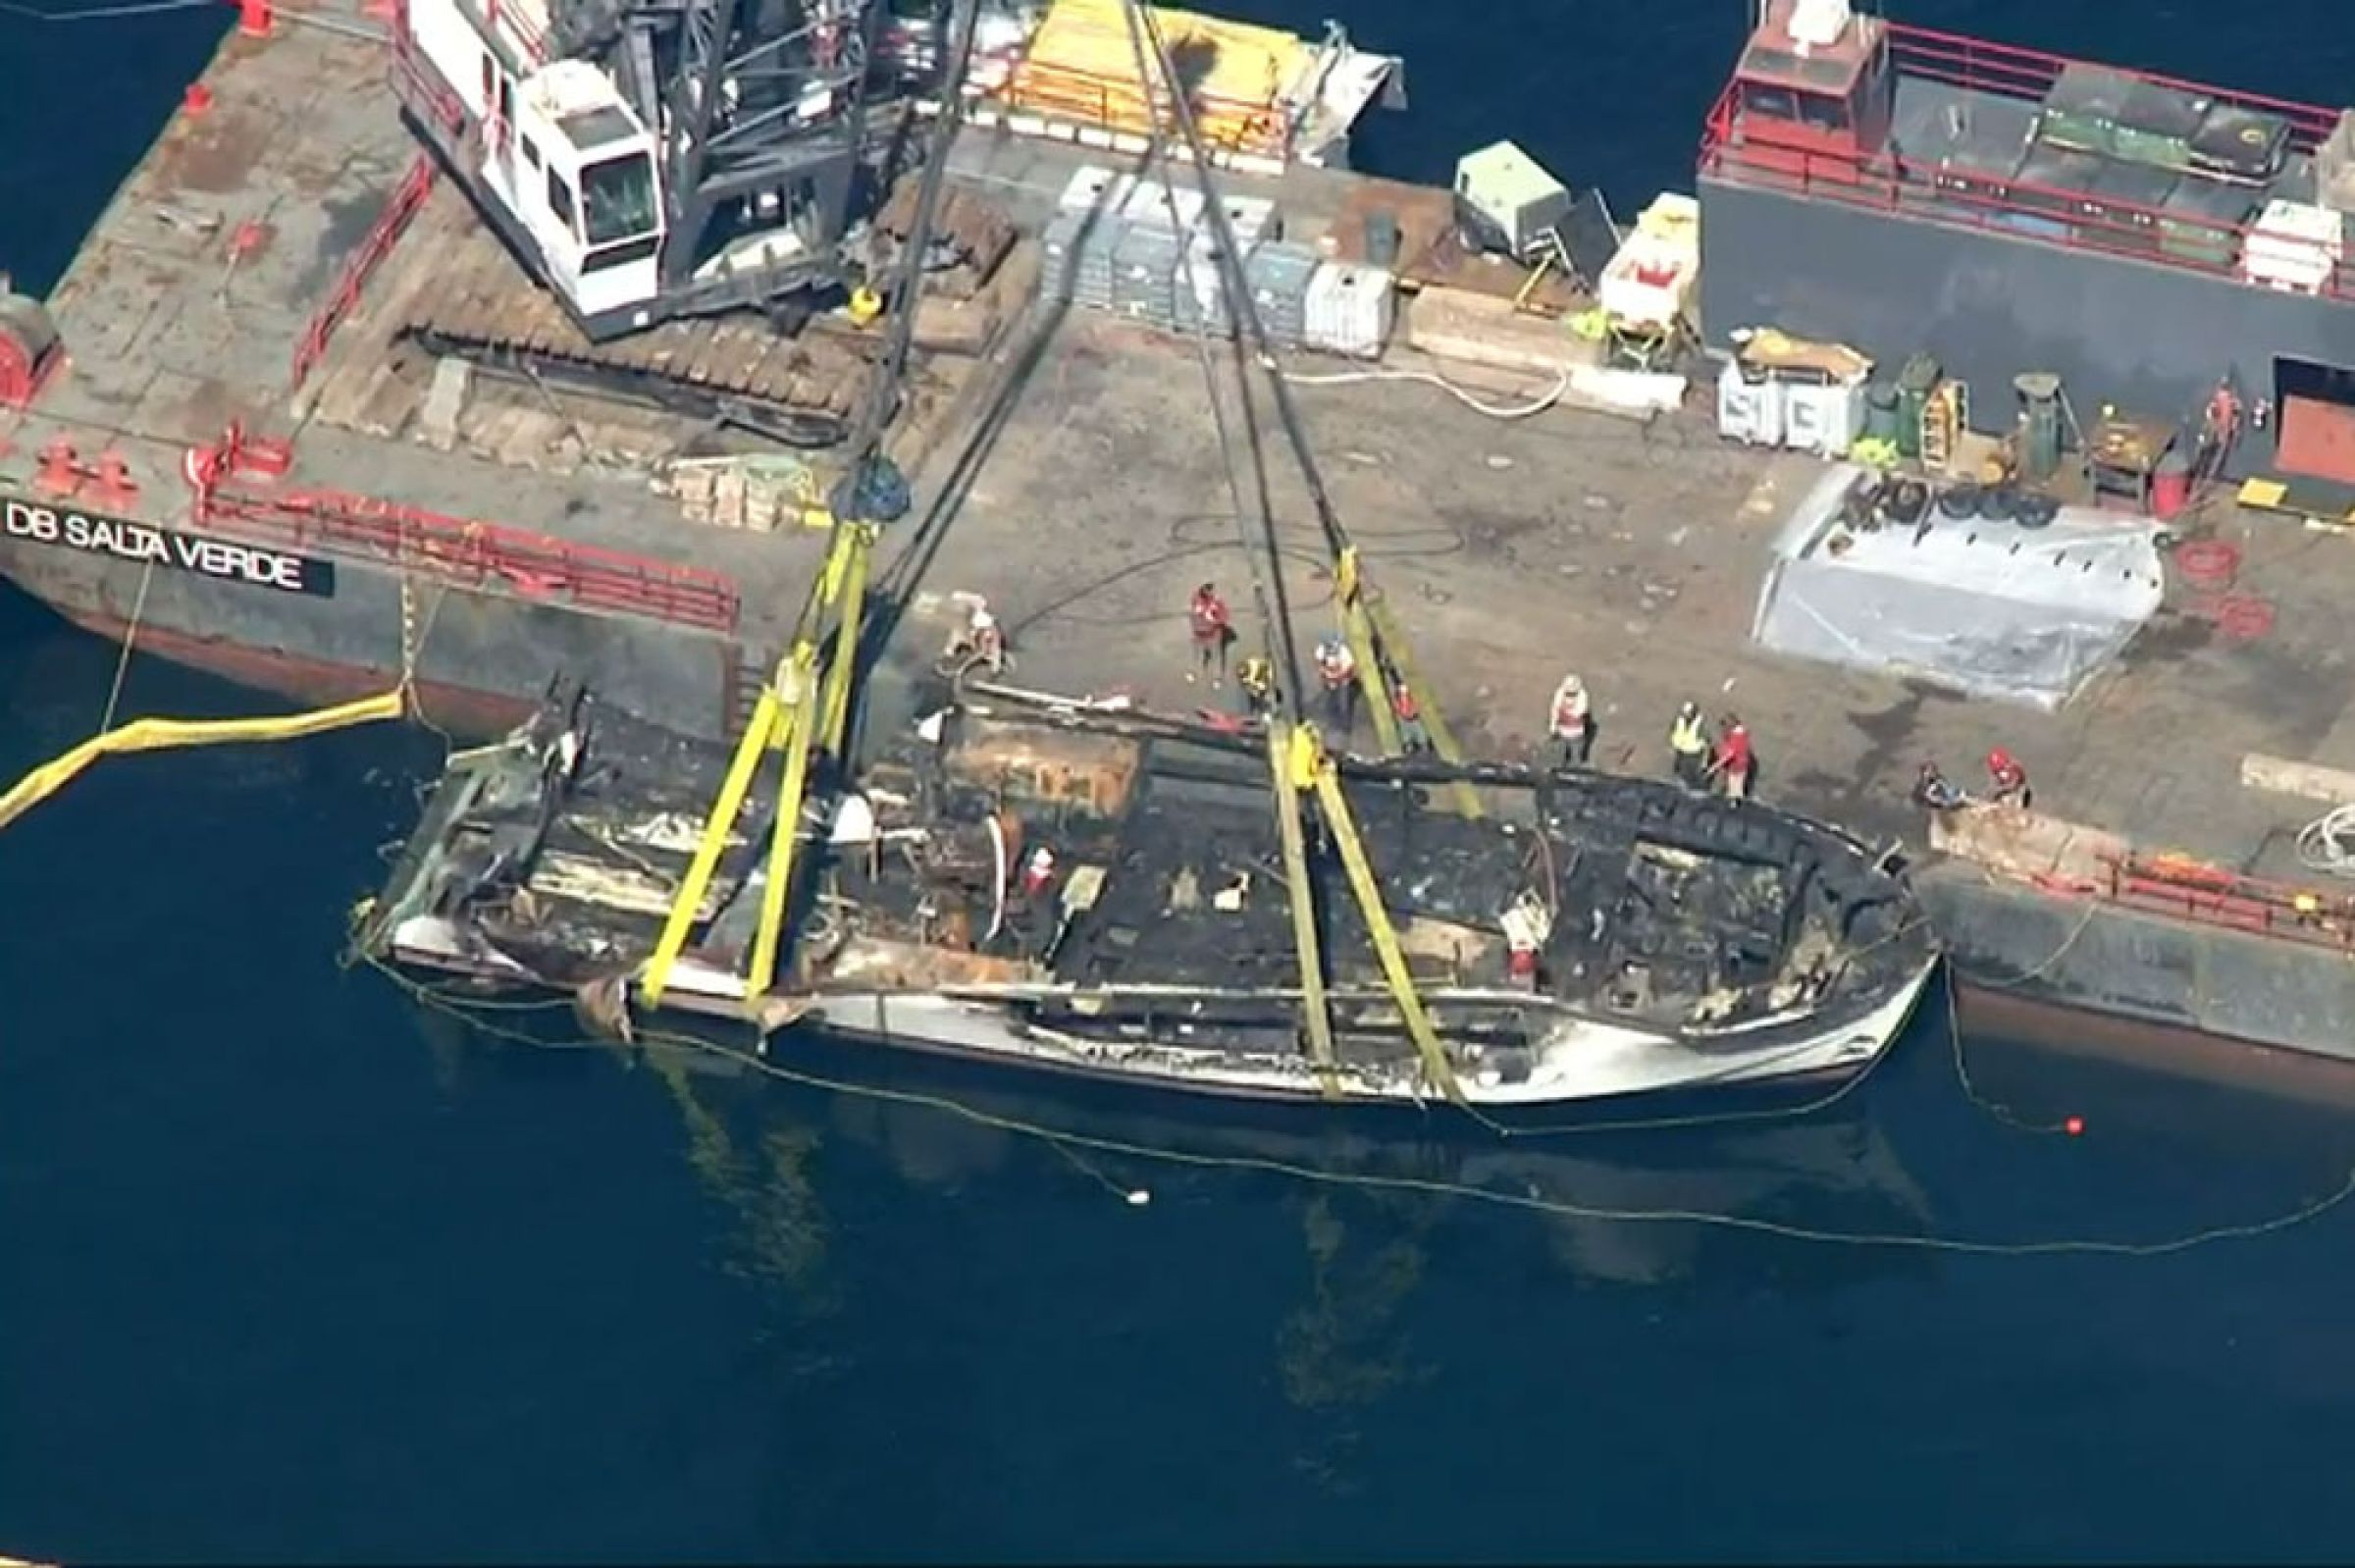 Conception Dive Boat Wreckage Recovered Being Transported For Probe Into Deadly Fire Local News Noozhawk Com